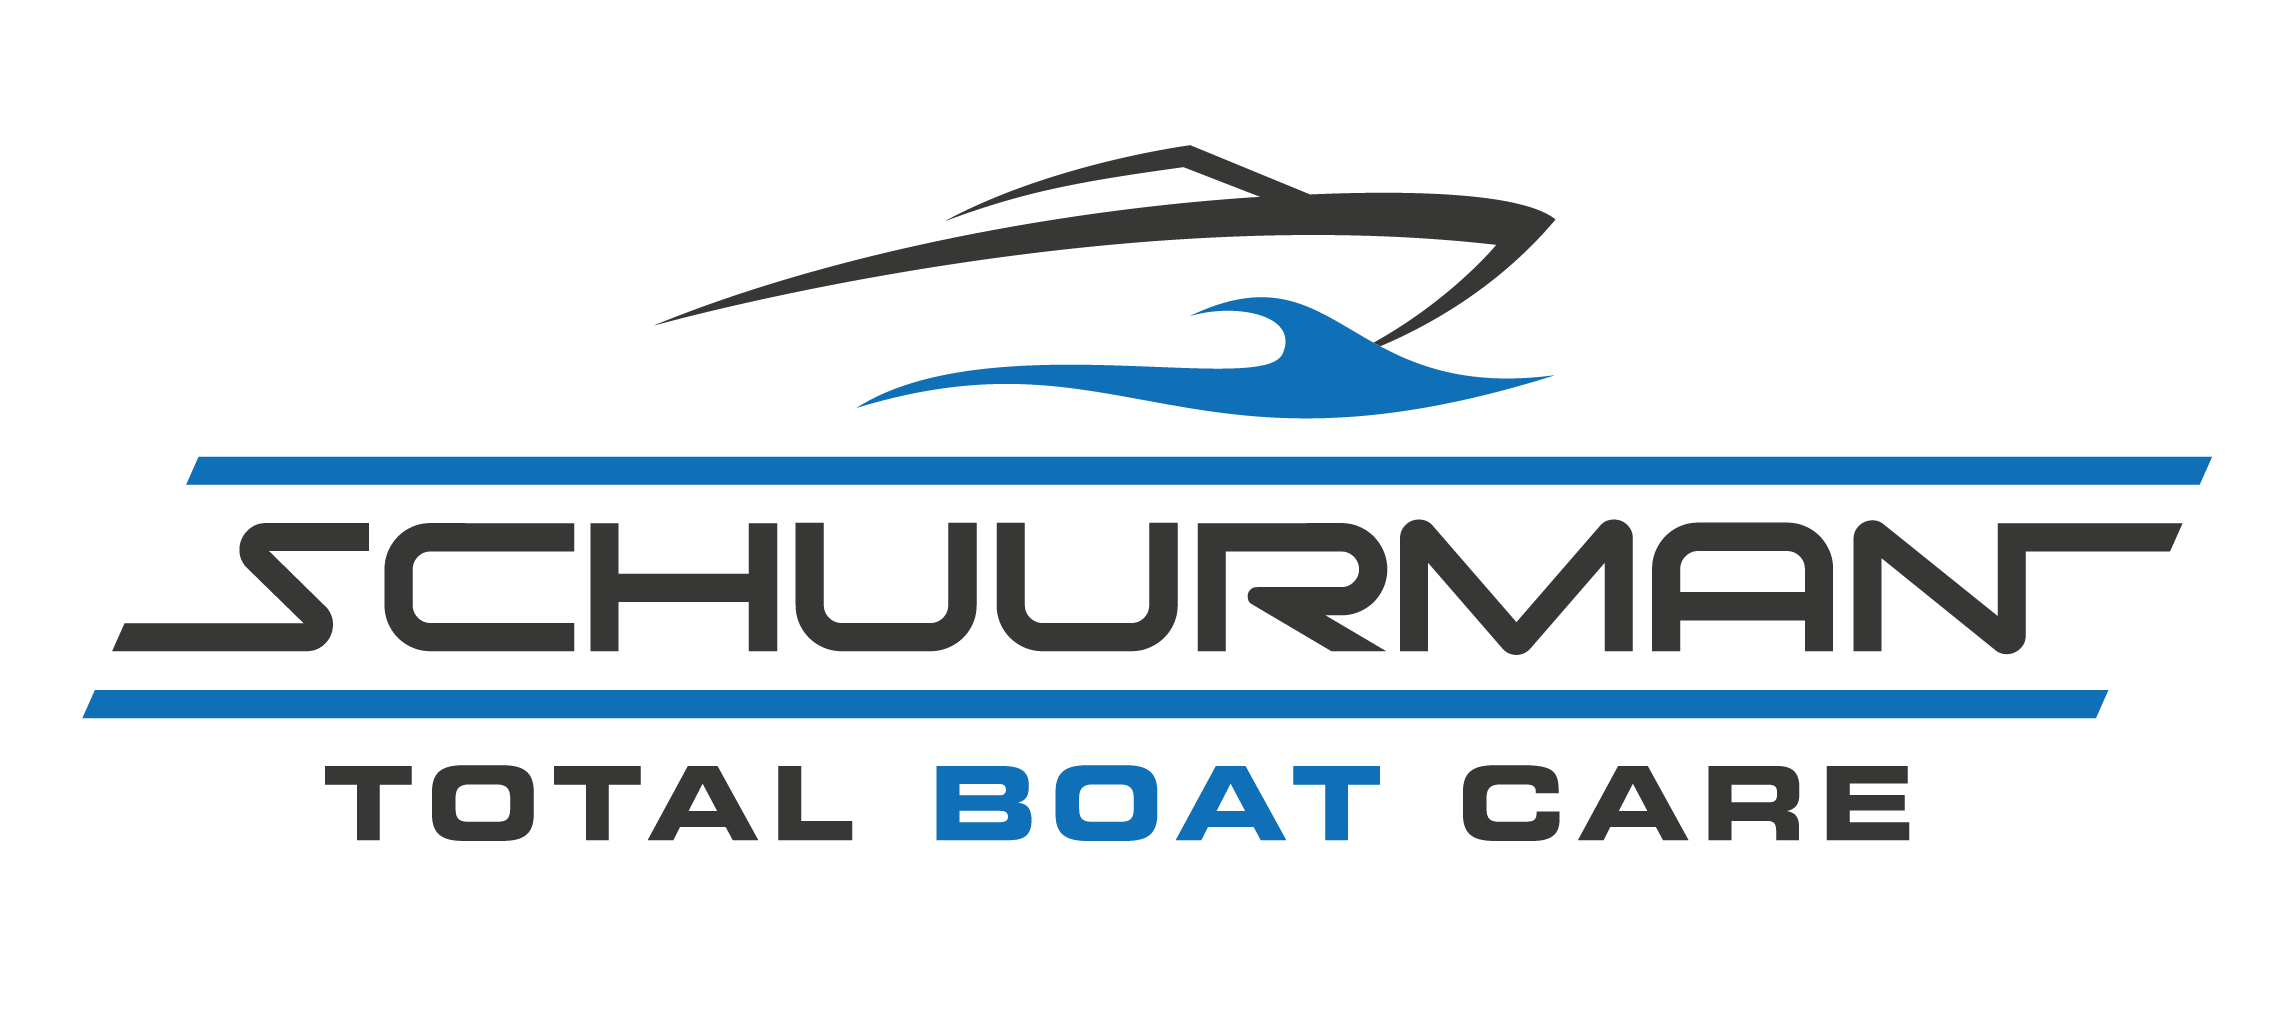 Schuurman Total Boat Care